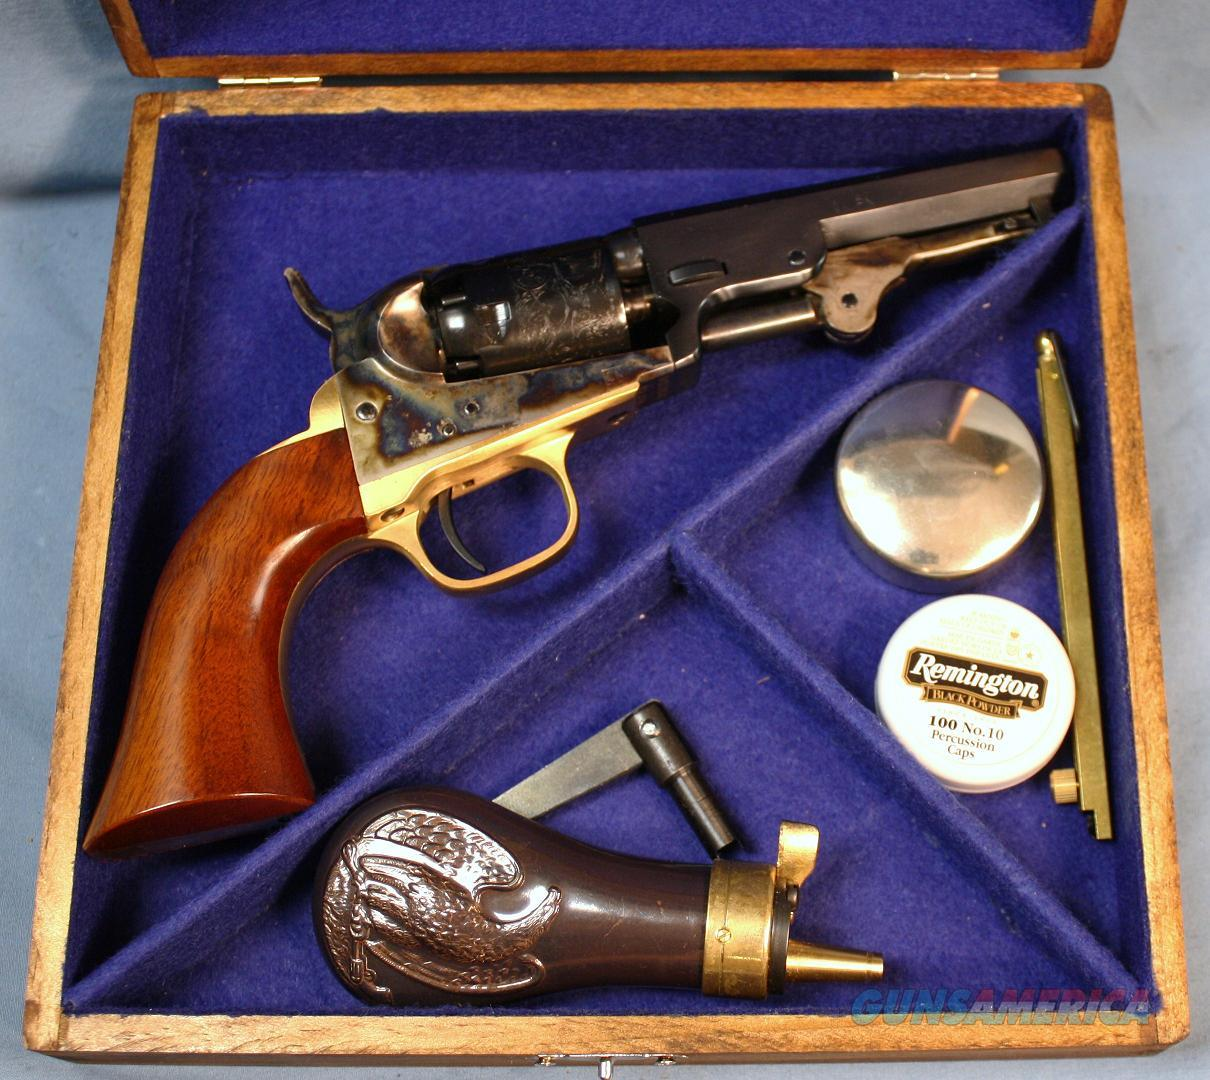 Uberti 1849 Pocket Single Action Percussion Revolver Cased Set 31 Caliber Free Shipping and No Credit Card Fees!   Guns > Pistols > Uberti Pistols > Percussion